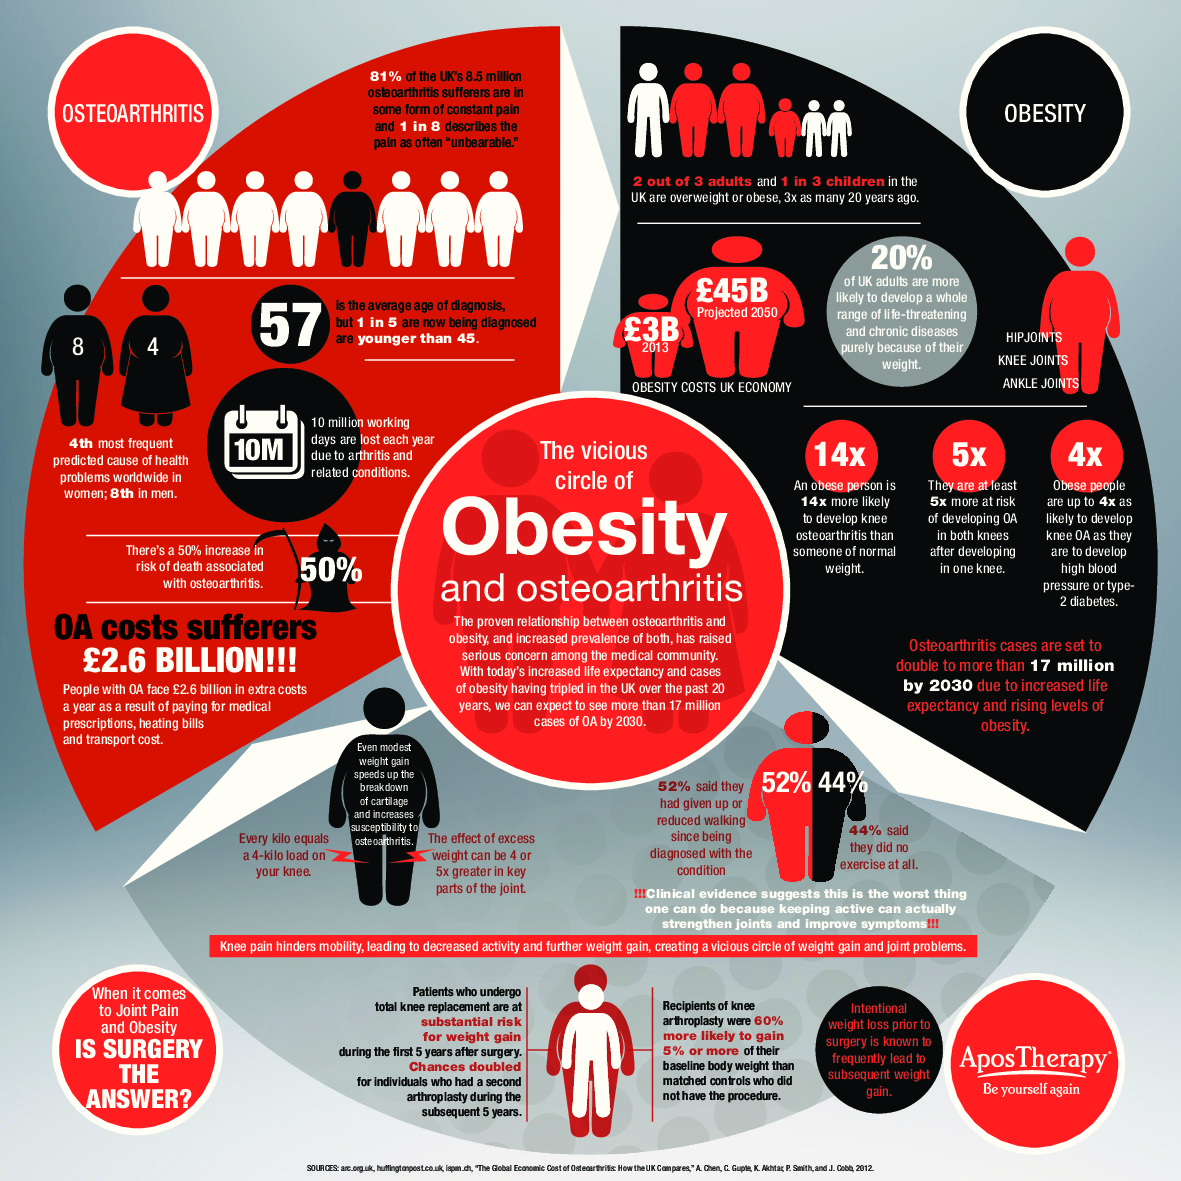 childhood obesity crisis The global burden of disease 2015 obesity collaborators looked a data on 685 million people to assess body weight trends between 1980 and 2015 the findings, published in the new england journal of medicine, provides the most comprehensive and up-to-date view of the ongoing obesity crisis around the globe.